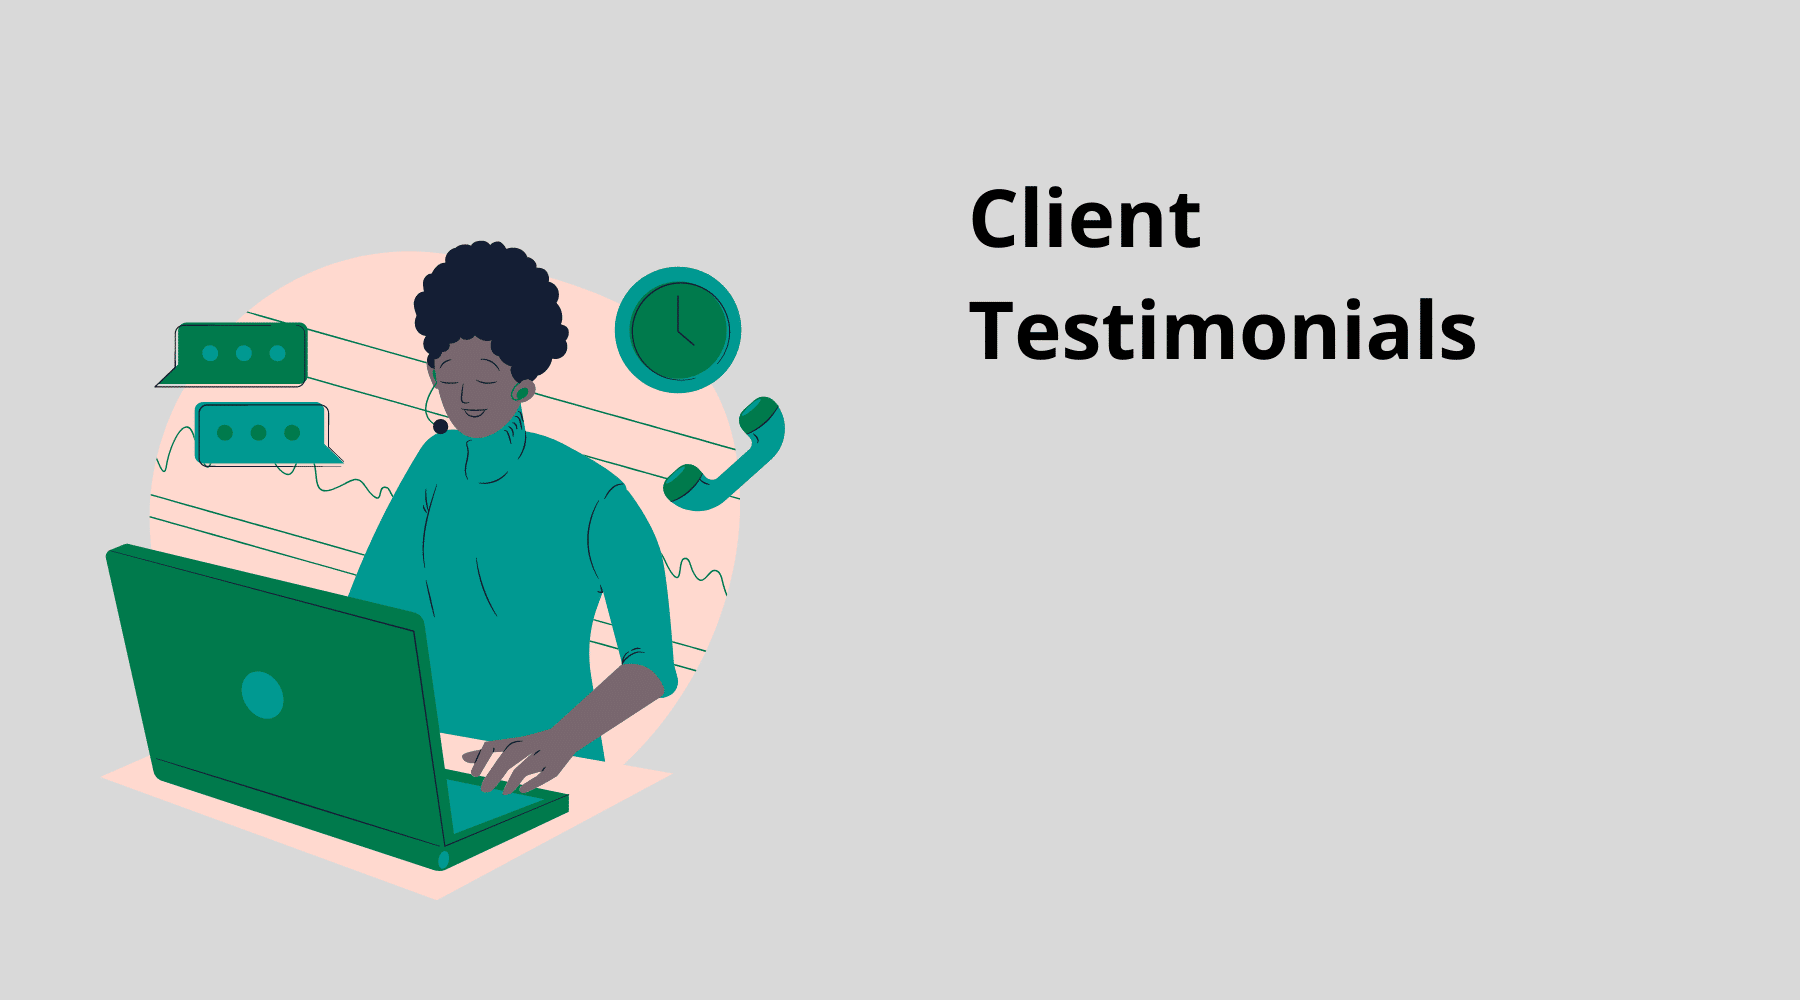 Home Care Client Testimonials